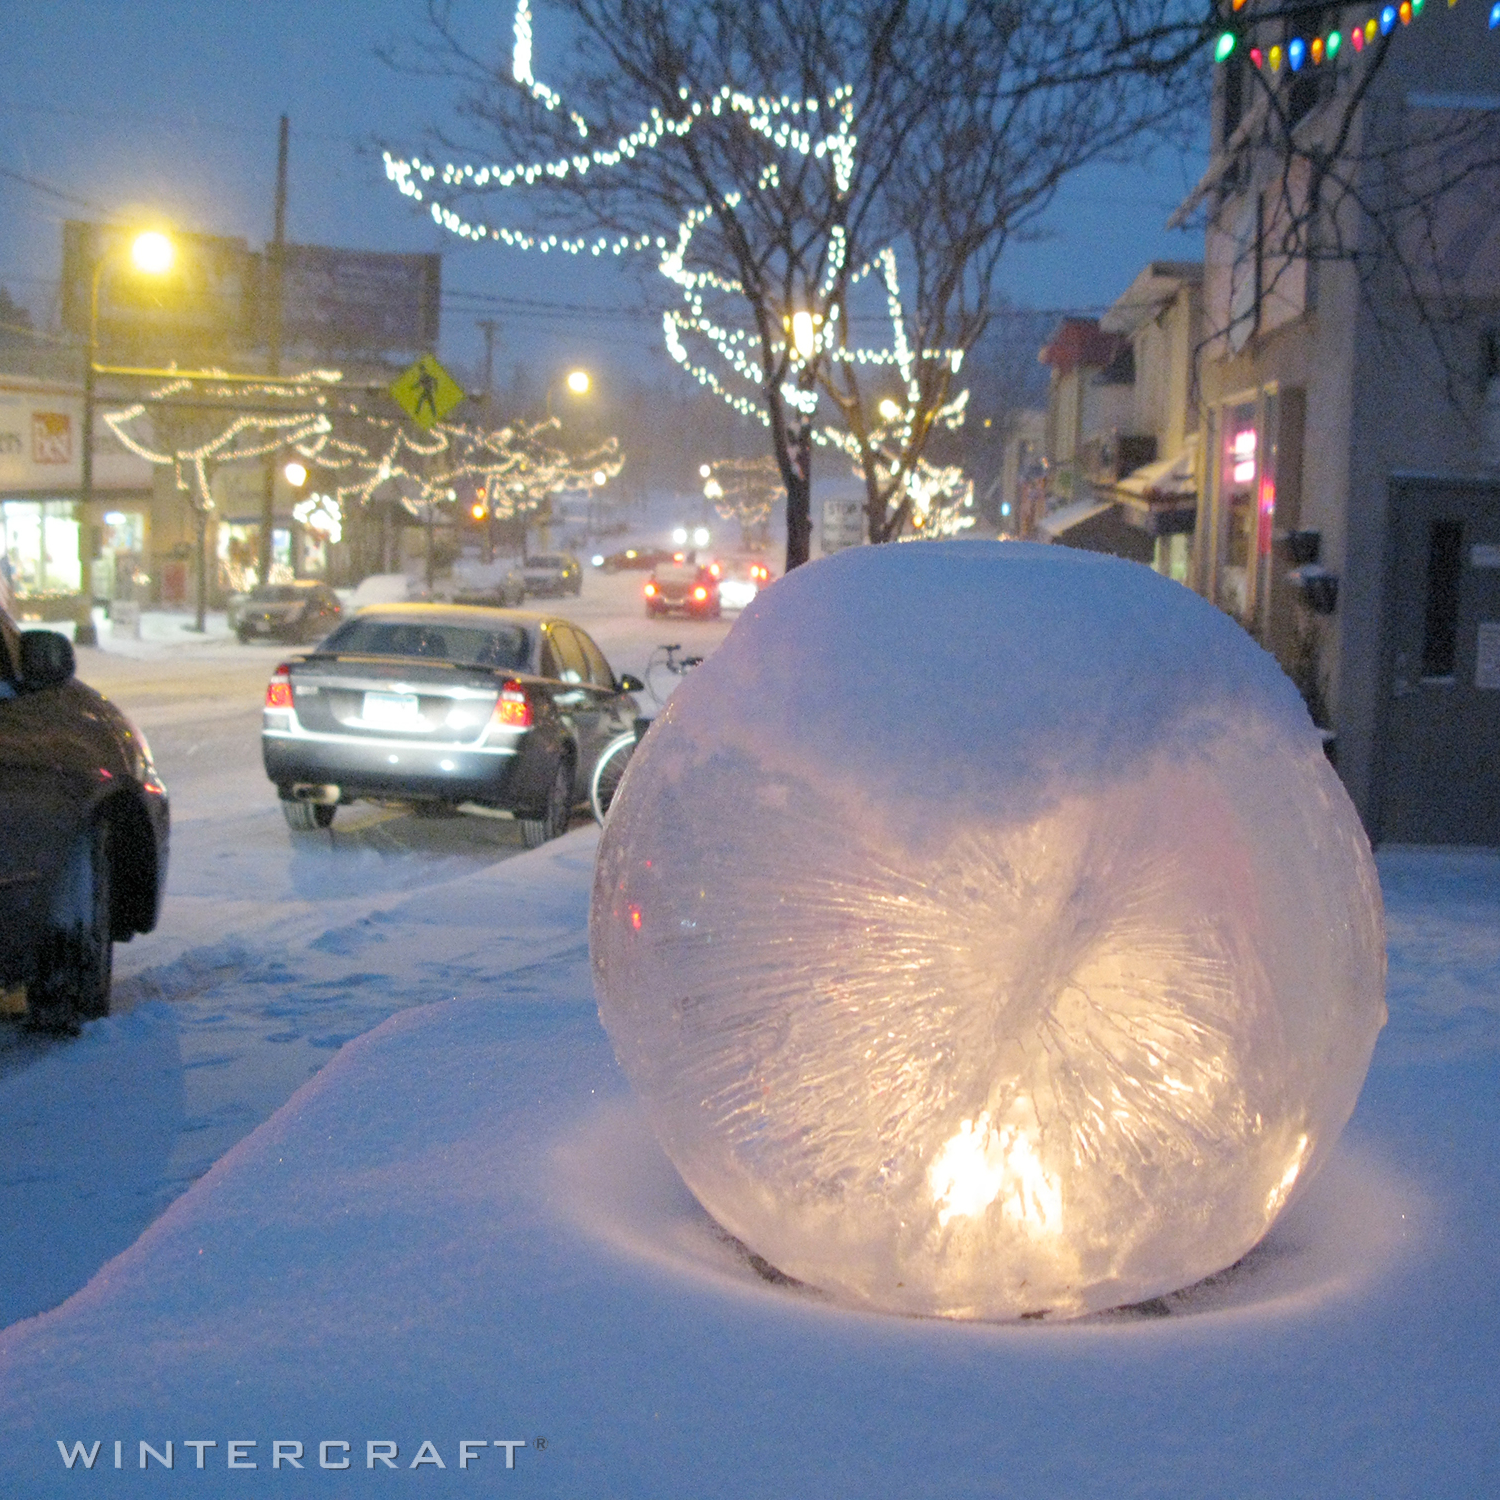 Wintercraft globe ice lantern beautifies a street for the holiday shopper